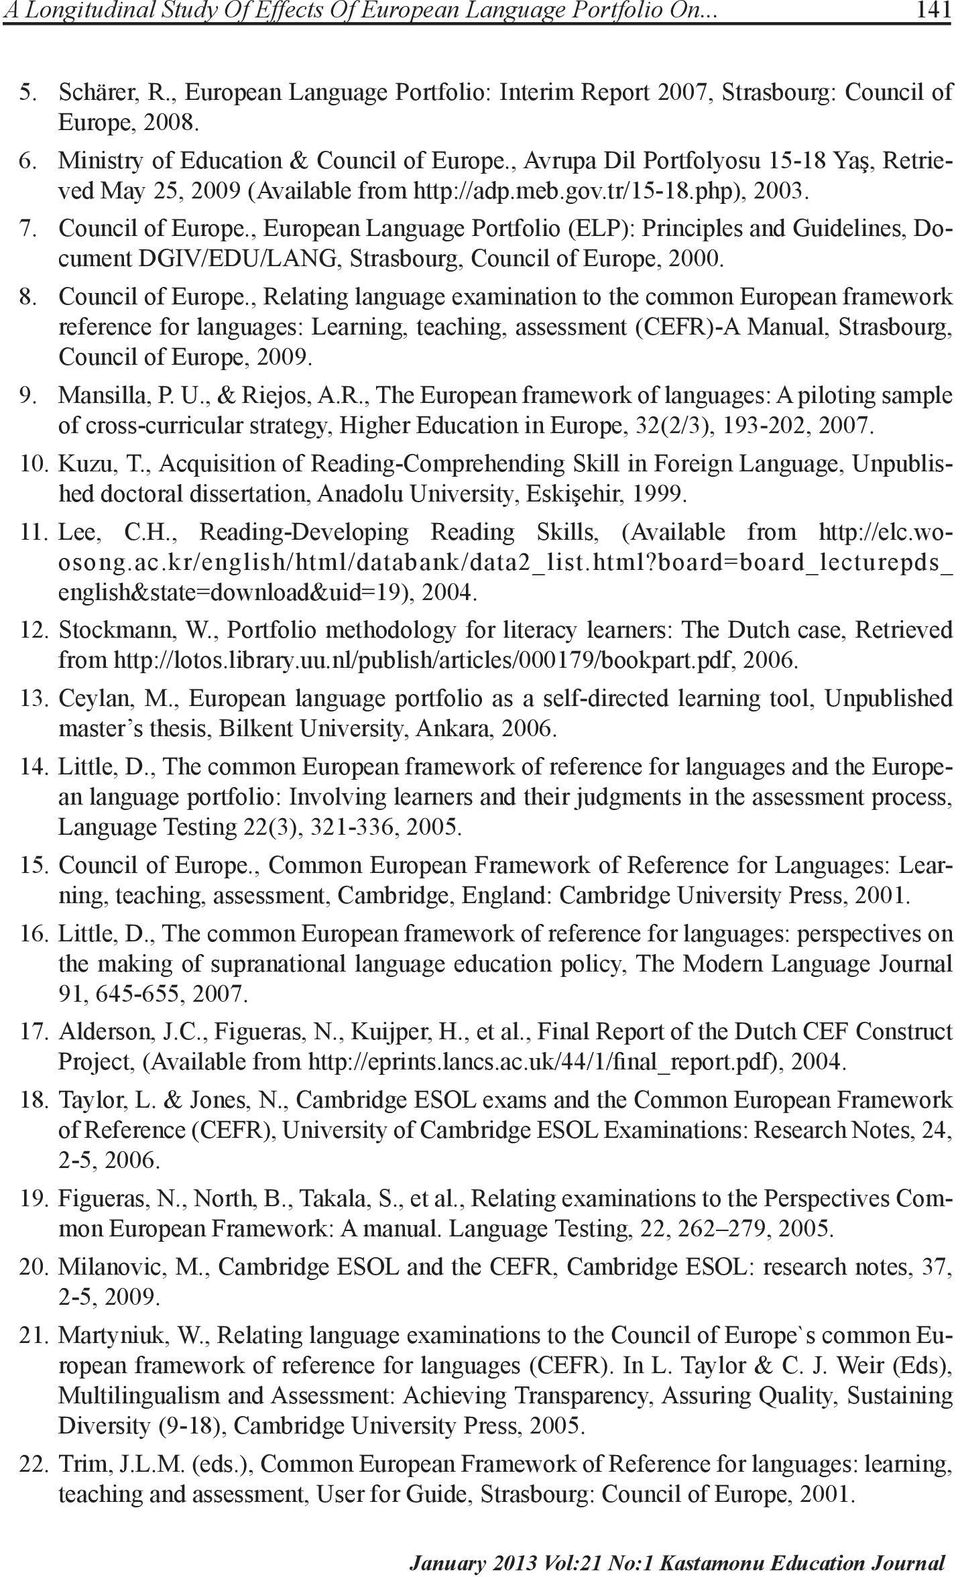 8. Council of Europe., Relating language examination to the common European framework reference for languages: Learning, teaching, assessment (CEFR)-A Manual, Strasbourg, Council of Europe, 2009. 9.